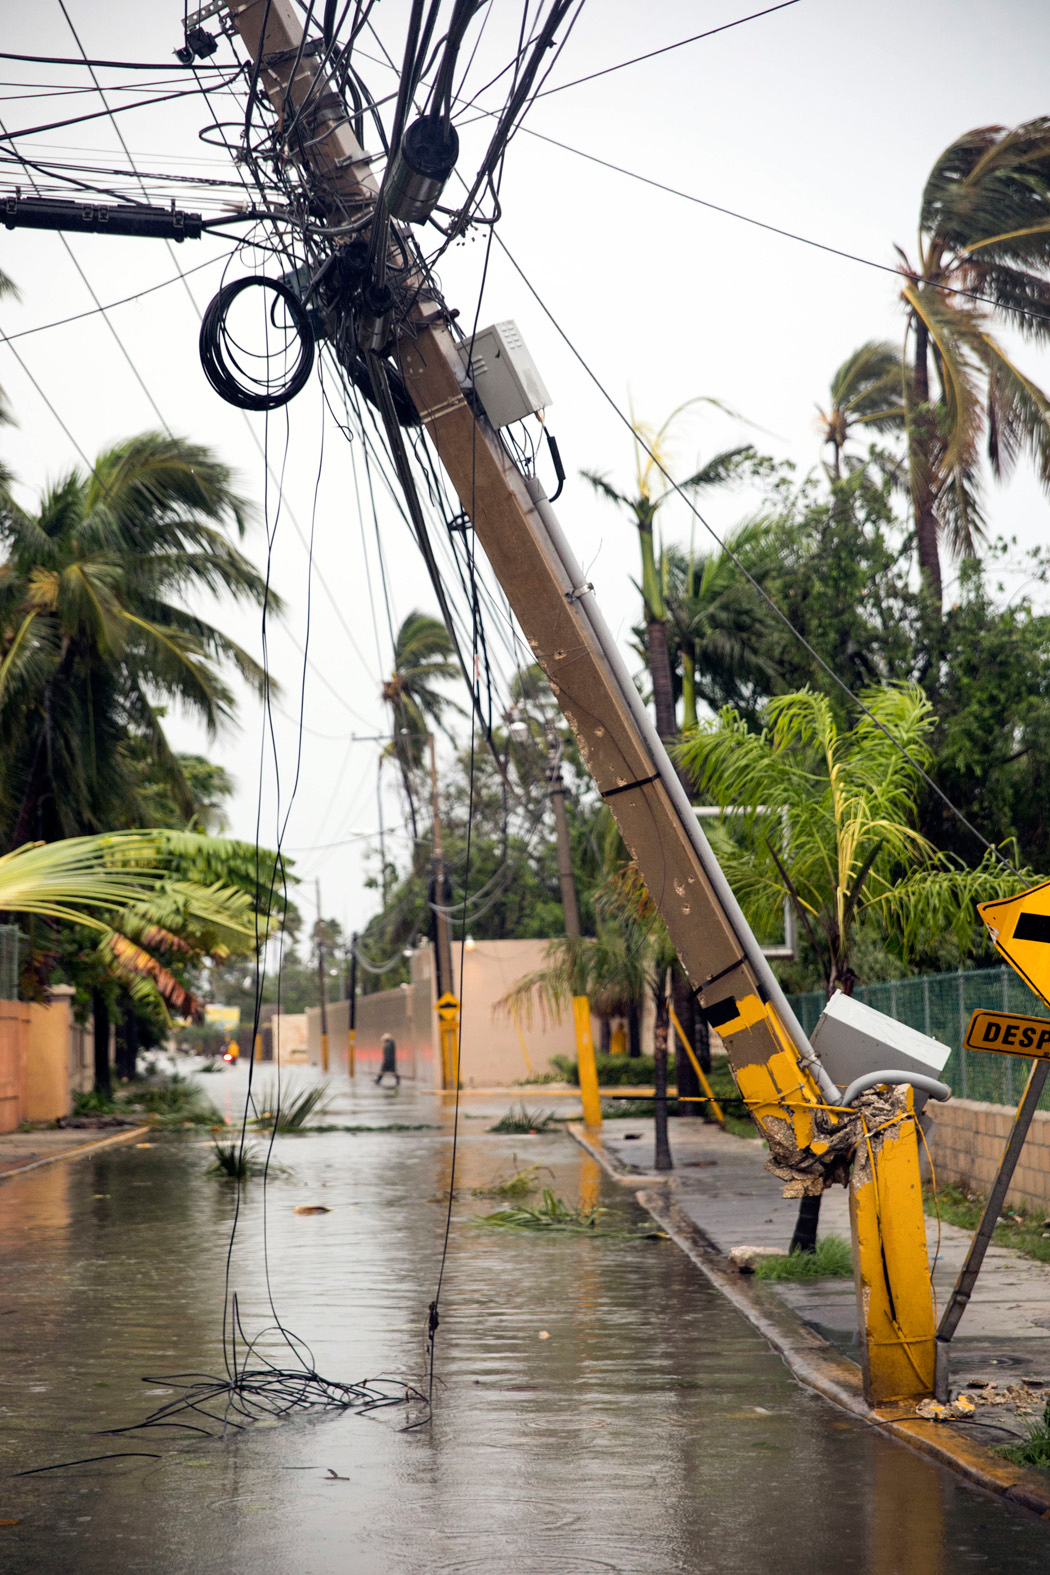 Electric cables and palms lay on the ground after the crossing of Hurricane Maria over Bavaro, Dominican Republic, Thursday, Sept. 21, 2017.  Rain from the storm will continue in the Dominican Republic for the next two days according to meteorologists. (AP Photo/Tatiana Fernandez)